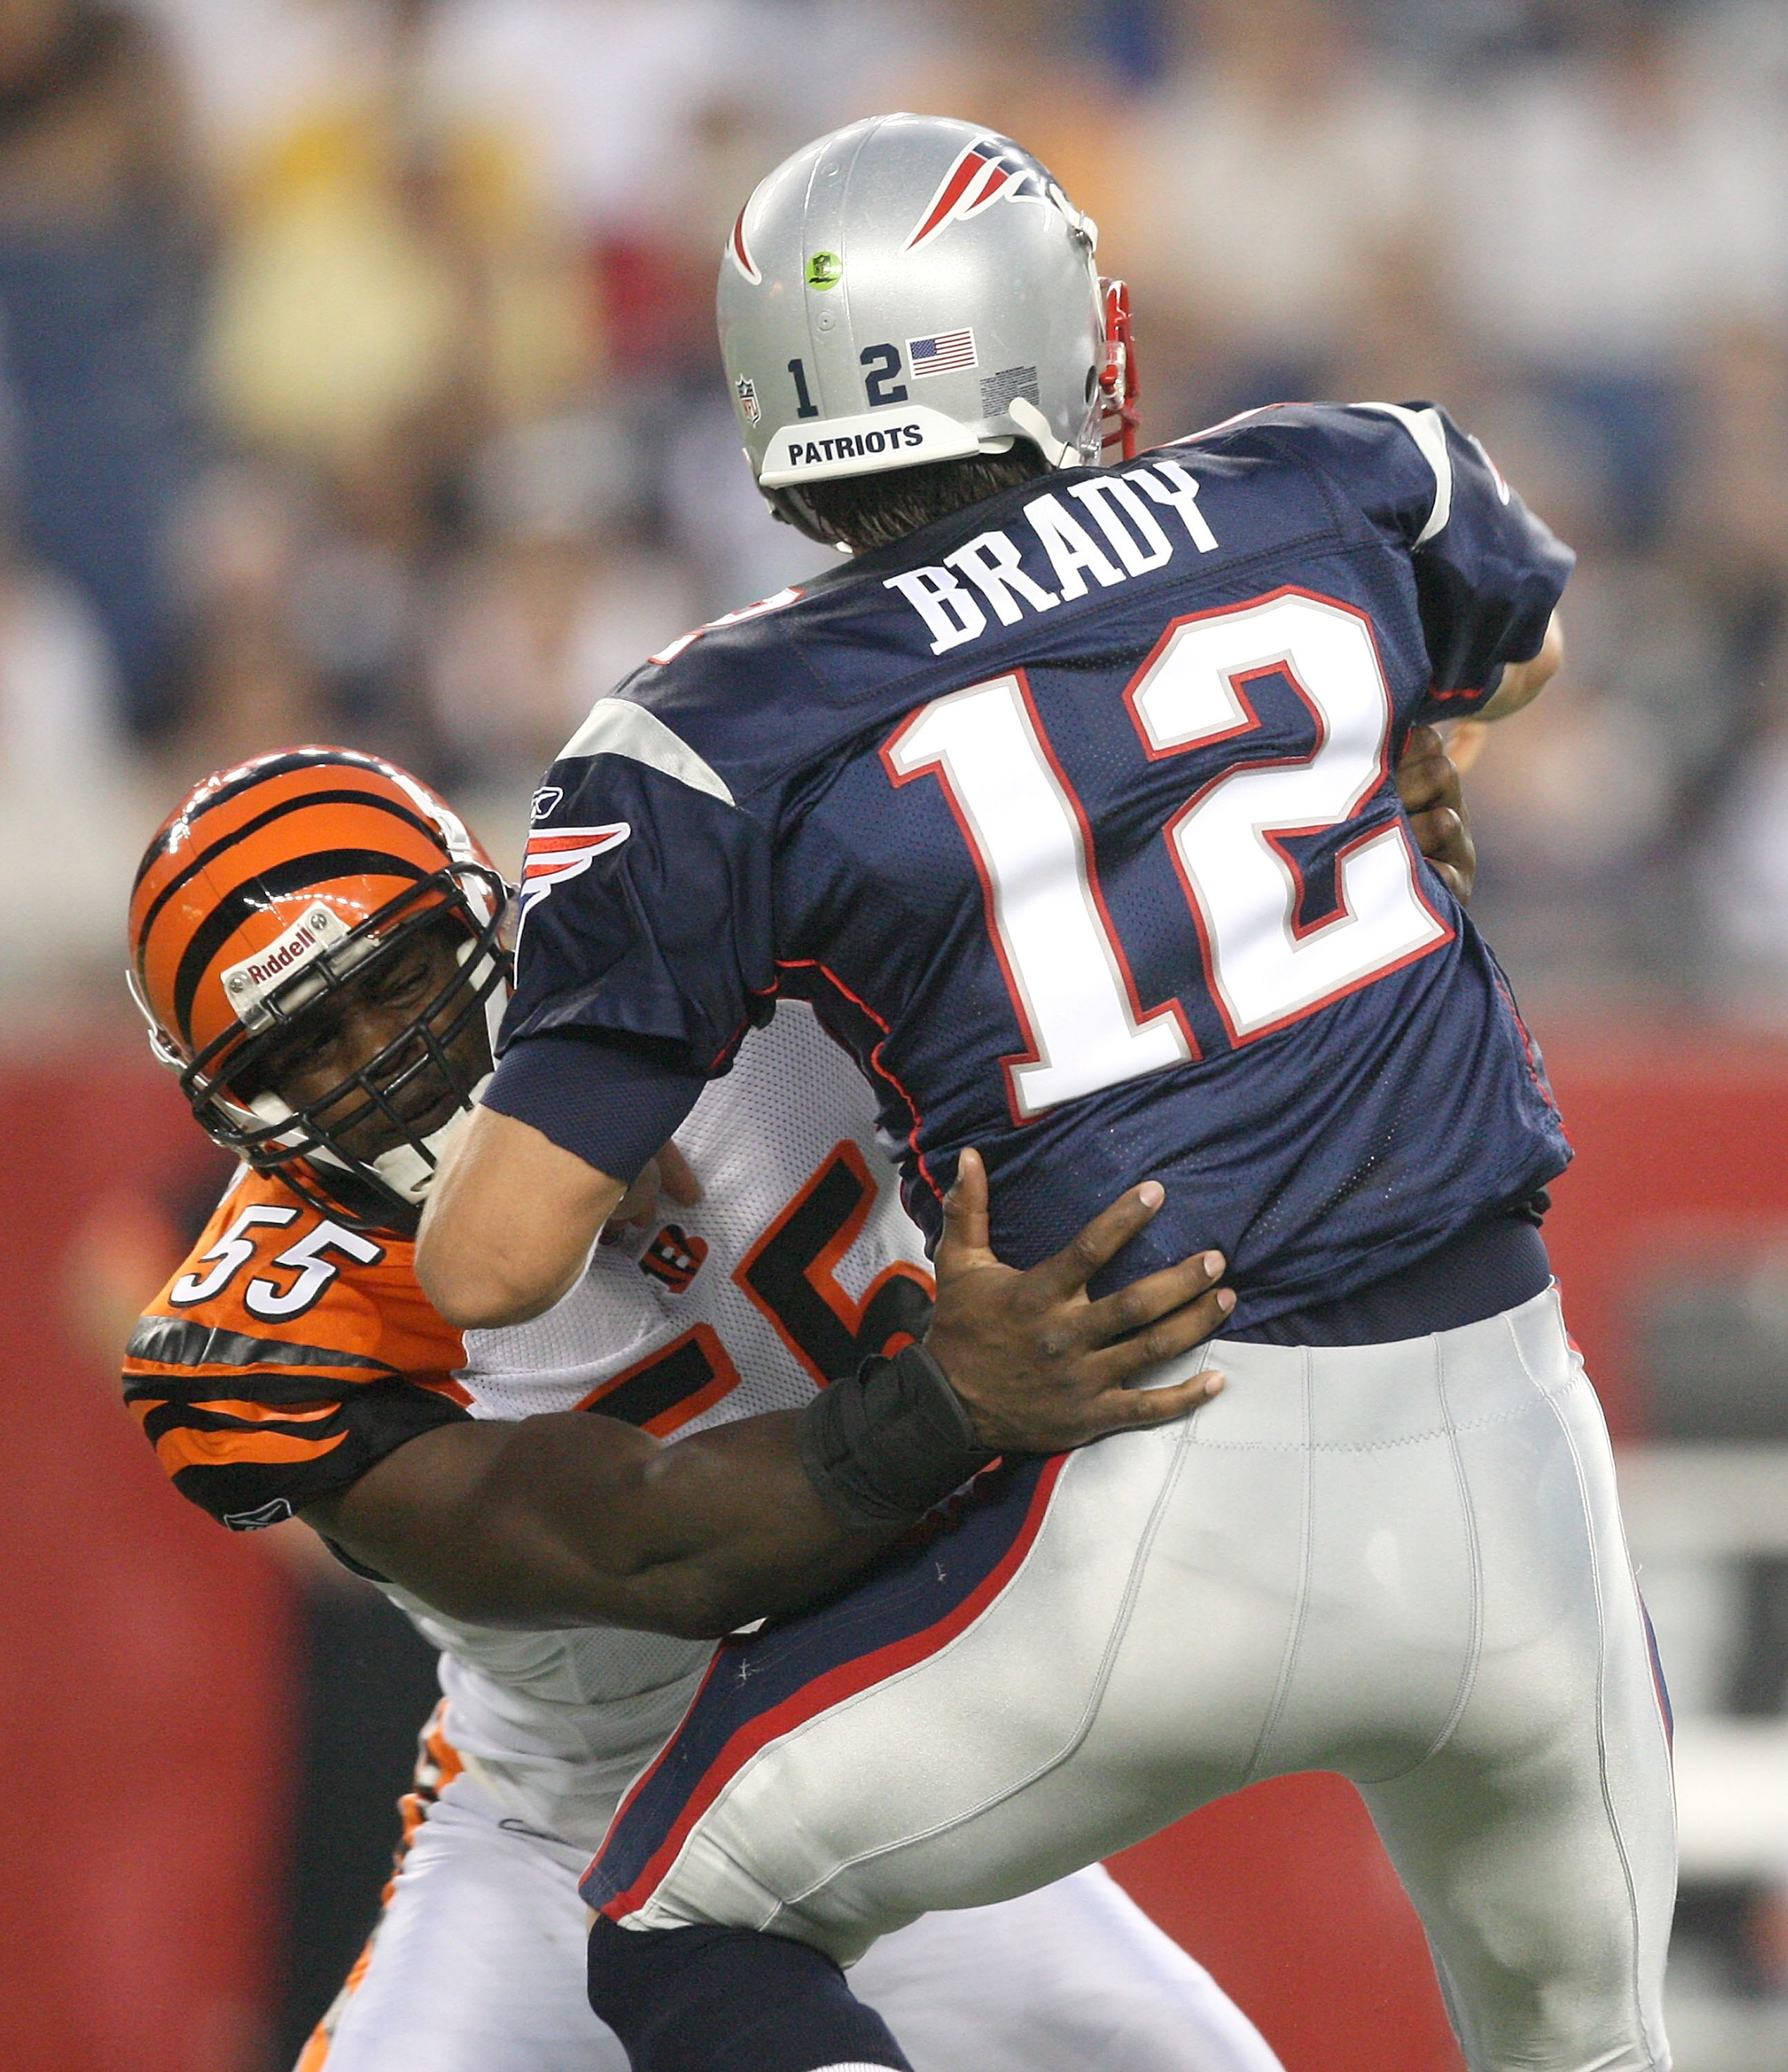 FOXBORO, MA - AUGUST 20:  Tom Brady #12 of the New England Patriots feels the pressure of Keith Rivers #55 of the Cincinnati Bengals at Gillette Stadium on August 20, 2009 in Foxboro, Massachusetts. (Photo by Jim Rogash/Getty Images)